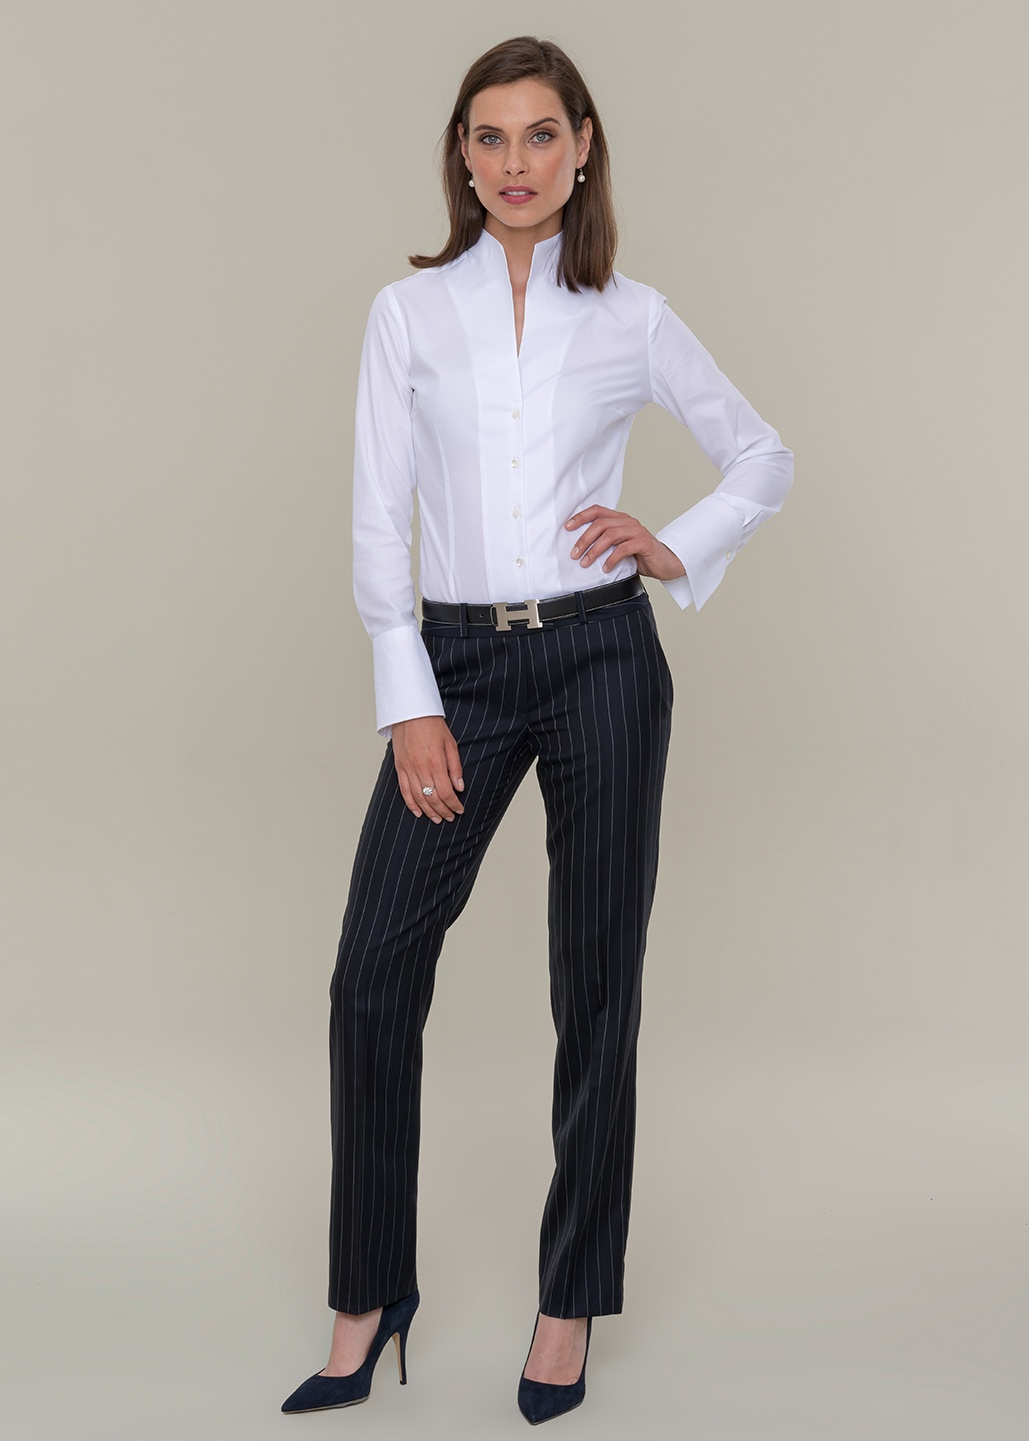 DOLZER_Business-Lady-Dresscode-Bluse-weiss-HW2017.jpg